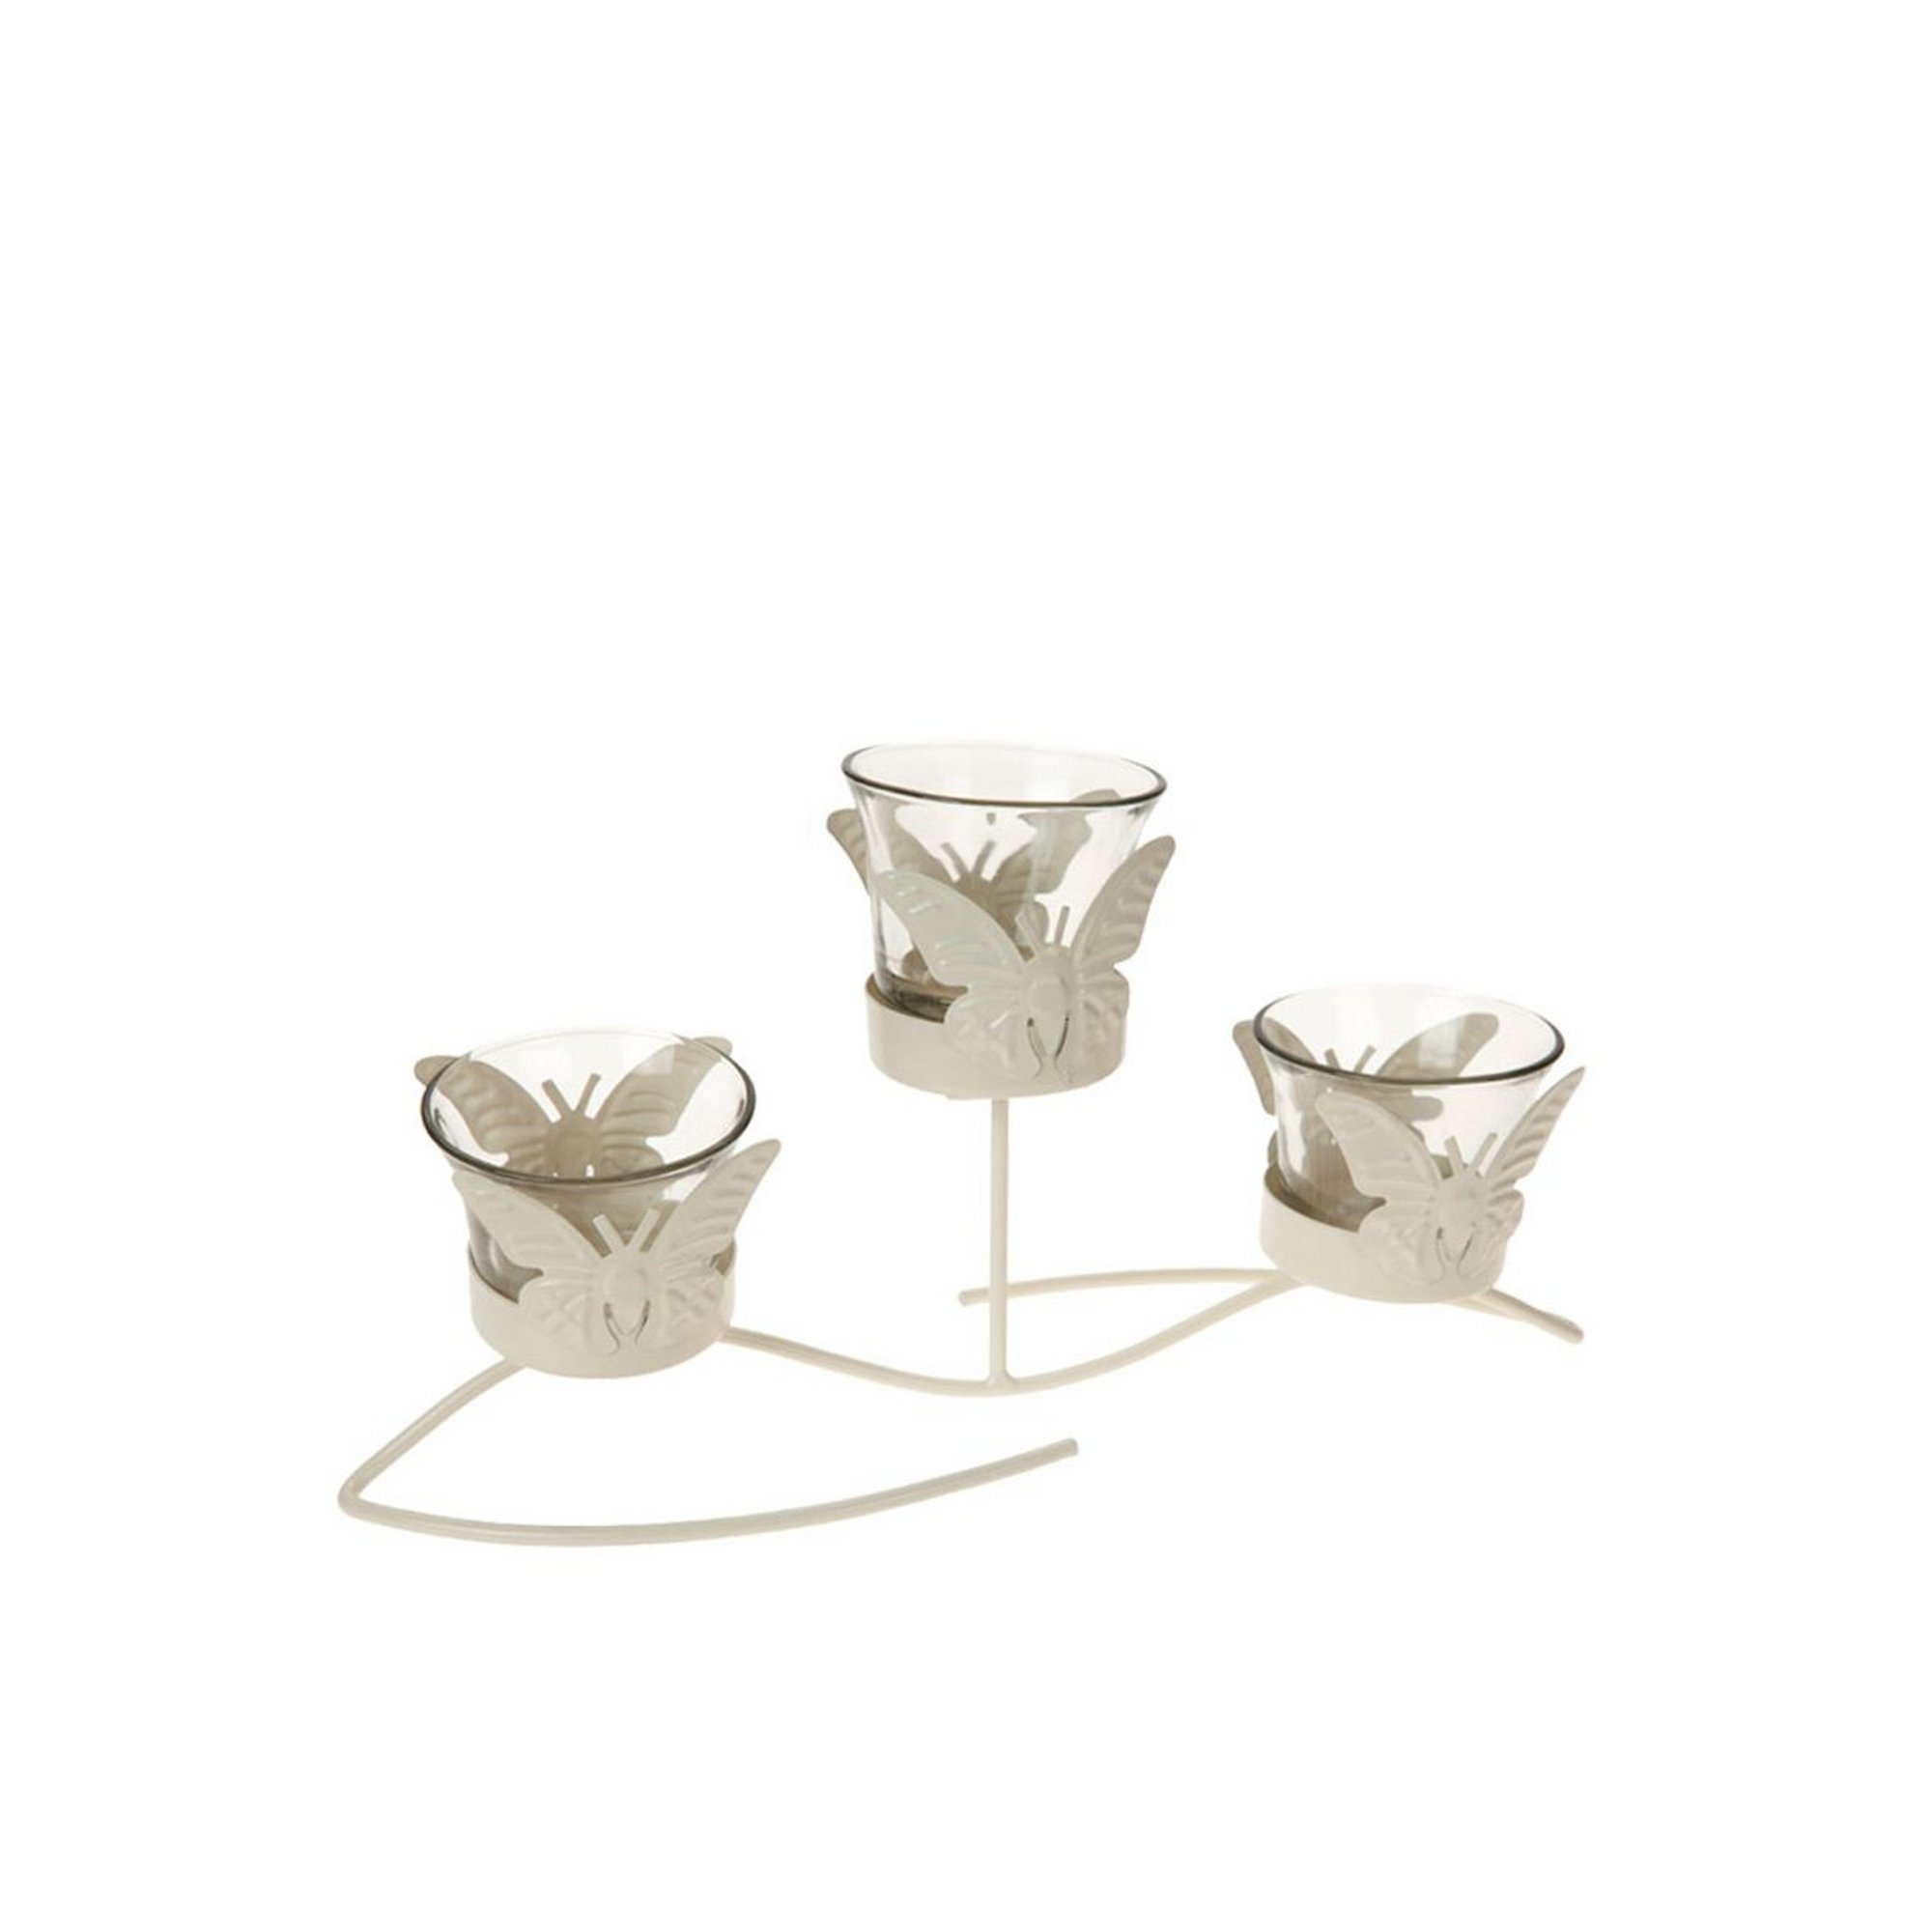 Image of Cream Triple Butterfly Garden Candle Holder